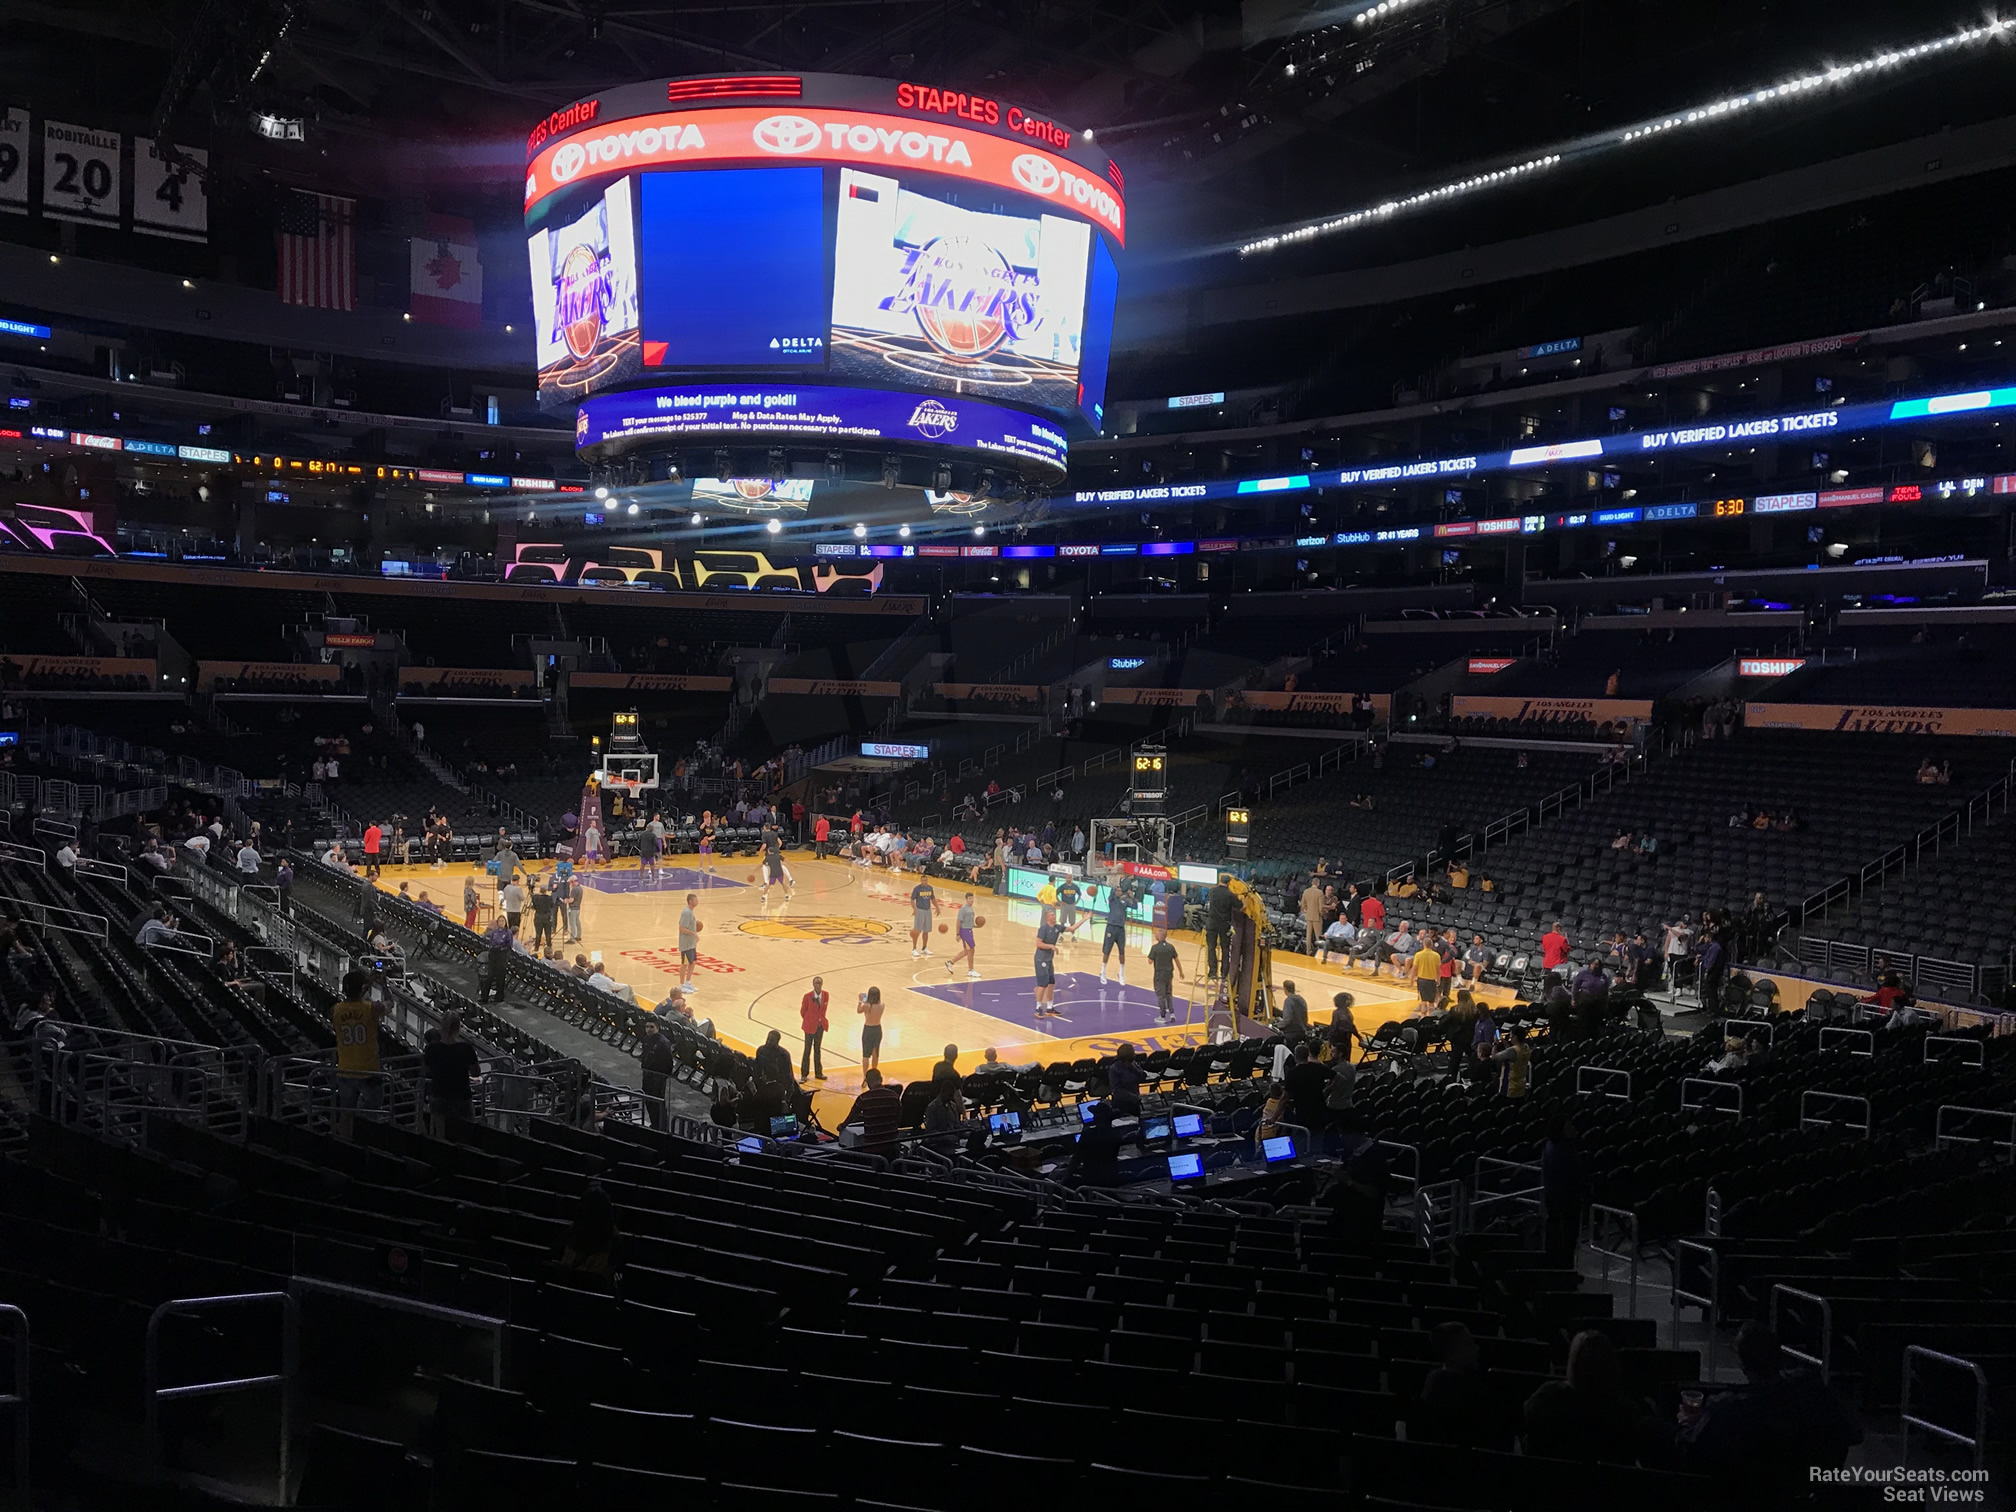 Staples Center Lakers Section 108 Row 20 2 on 10 2 2017f